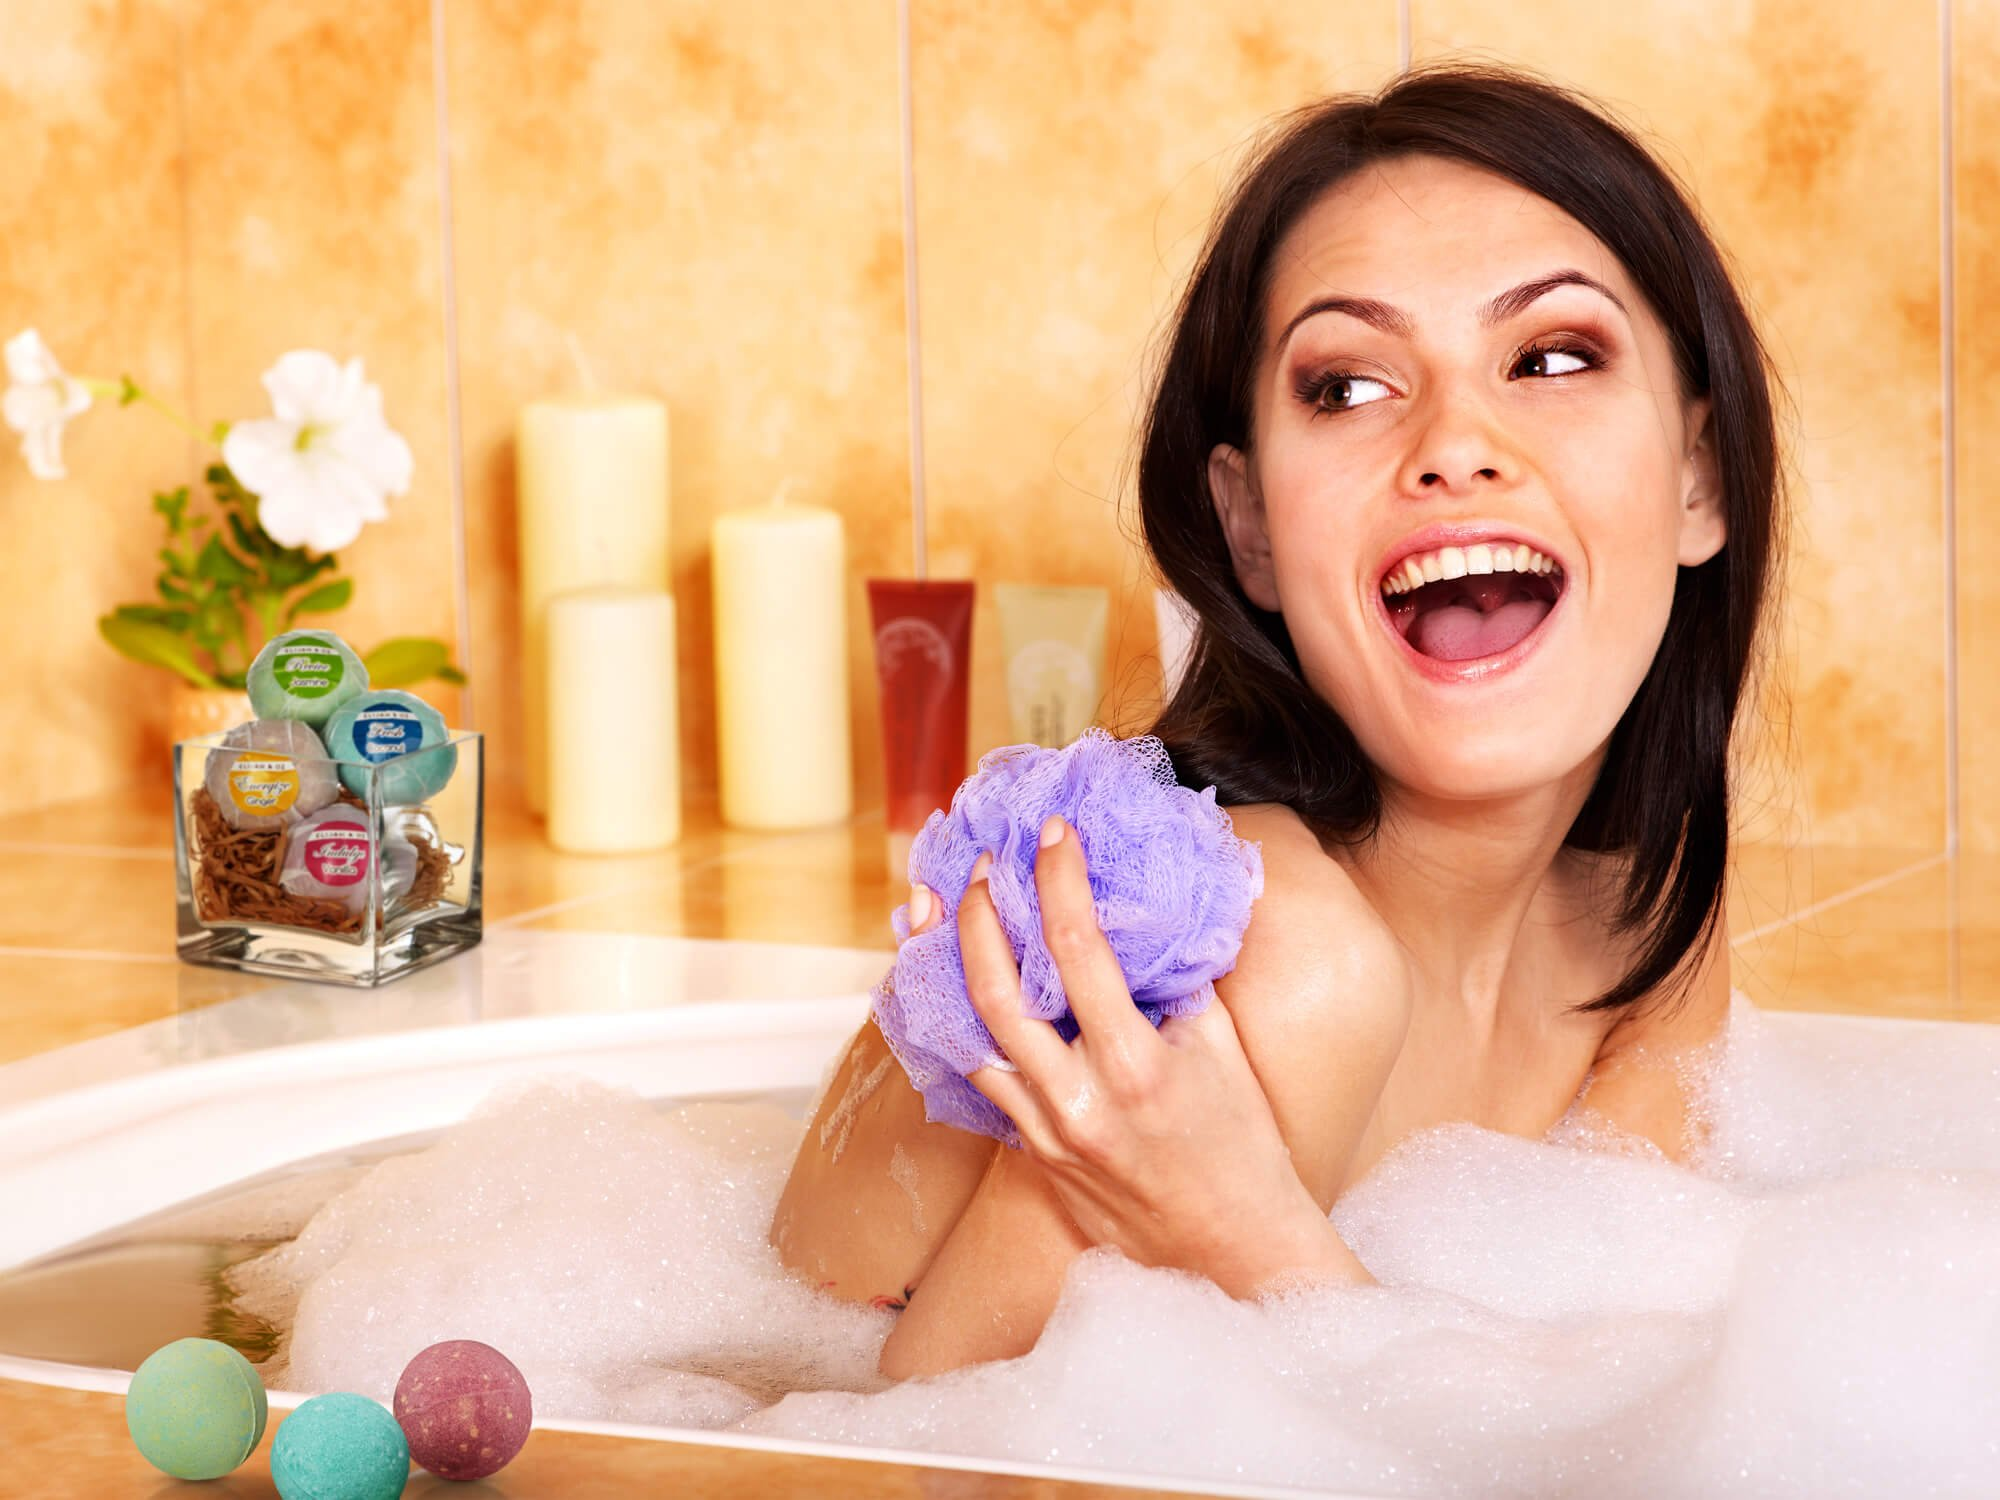 Bath Bombs Gift Set - Handmade Spa Fizzies for Relaxation & Aromatherapy - With Organic, Natural Essential Oils and Shea Butter - Vegan & Cruelty-Free (Set of 6)- By Elijah & Oz by Elijah & Oz (Image #5)